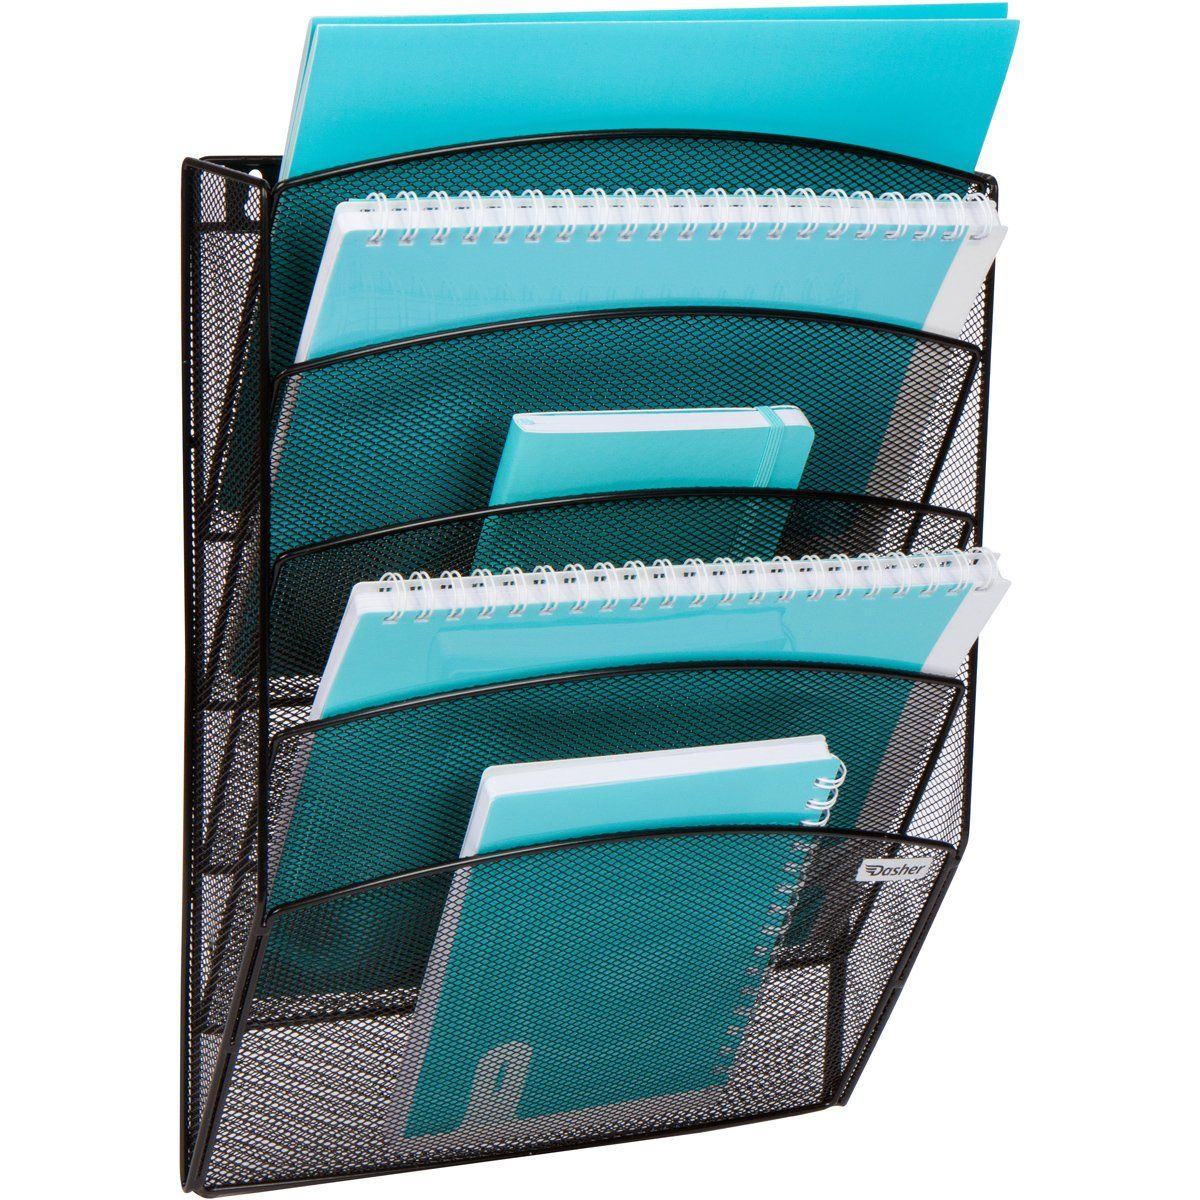 Mesh Wall Mounted Document and File Organizer 50 Tier Magazine Rack